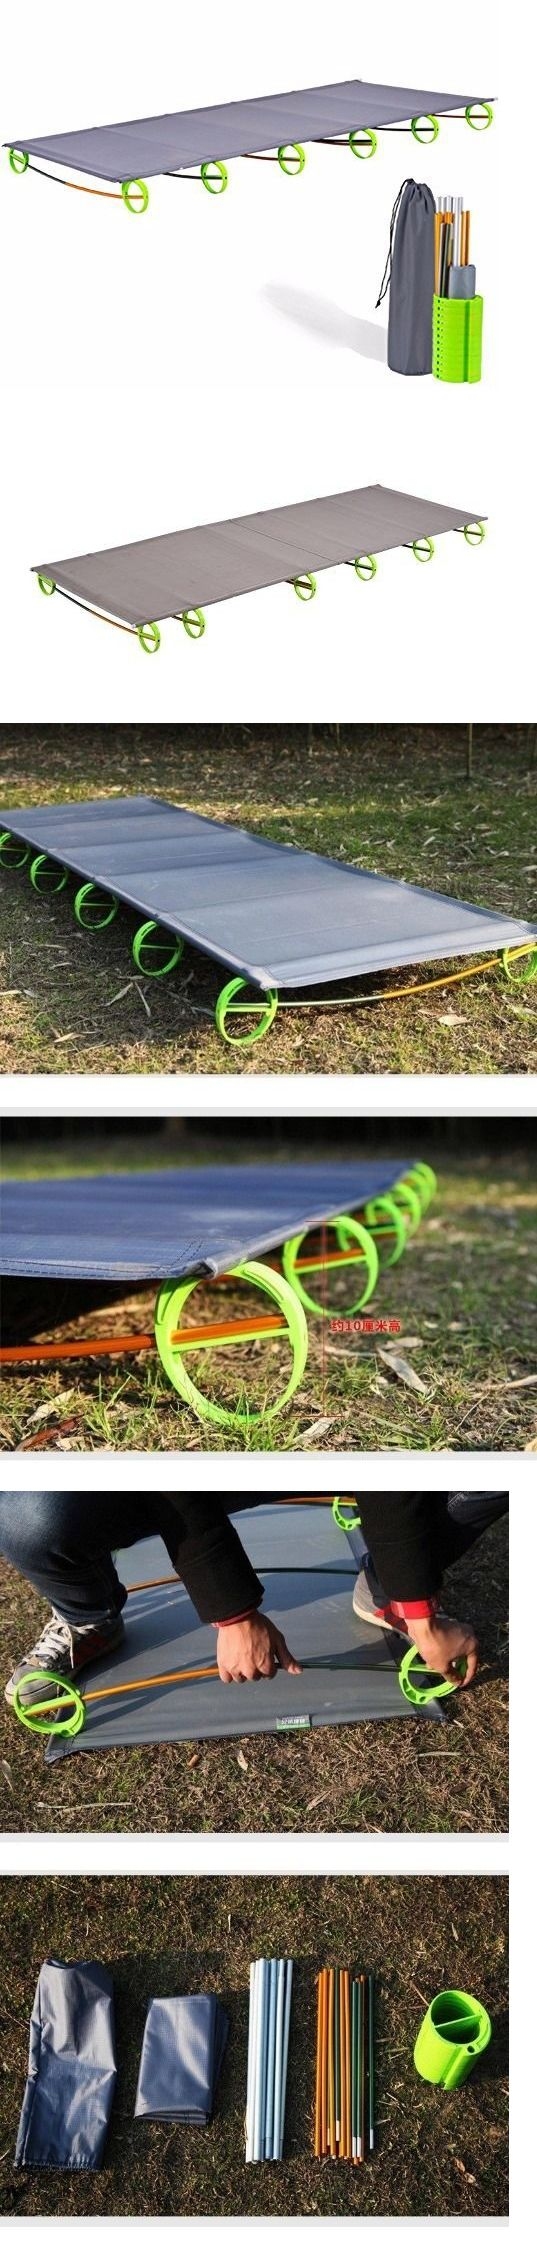 Cots 87099: Ultralight Folding Bed Portable Aluminium Alloy Cots Camping Tent Bed Outdoor -> BUY IT NOW ONLY: $45.99 on eBay!